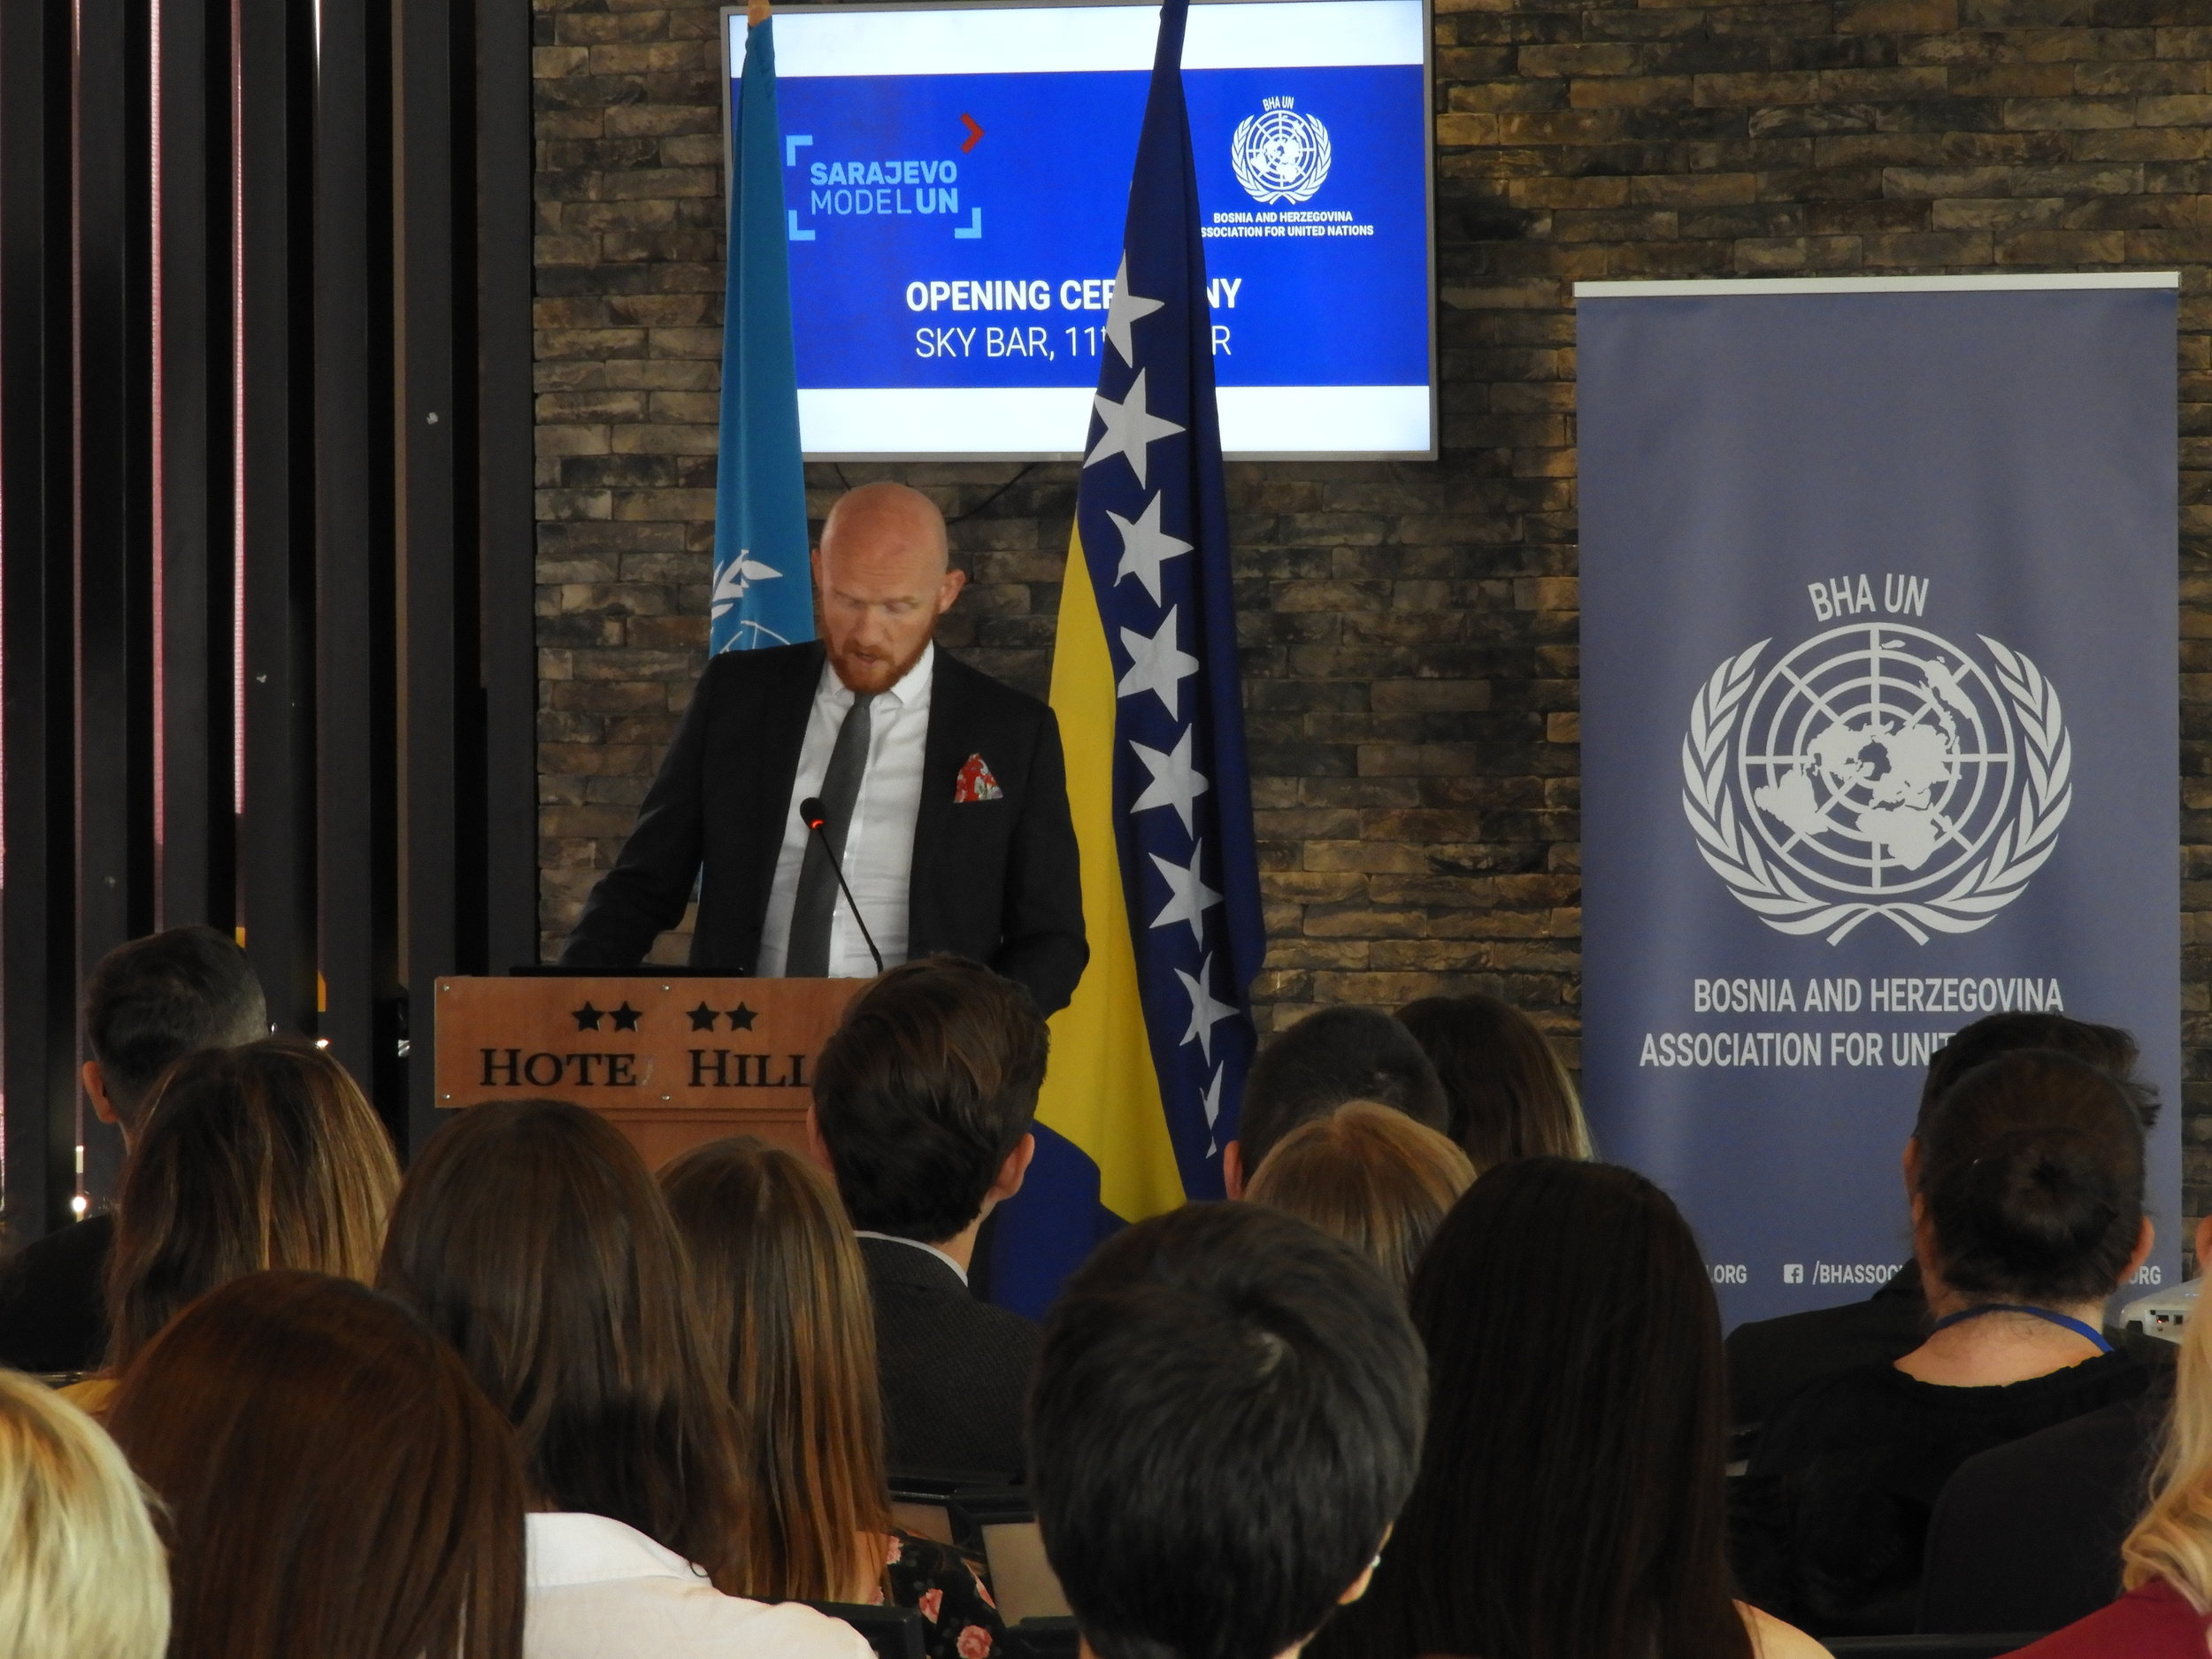 H.E. Mr. Matthew Field, British Ambassador to Bosnia and Herzegovina